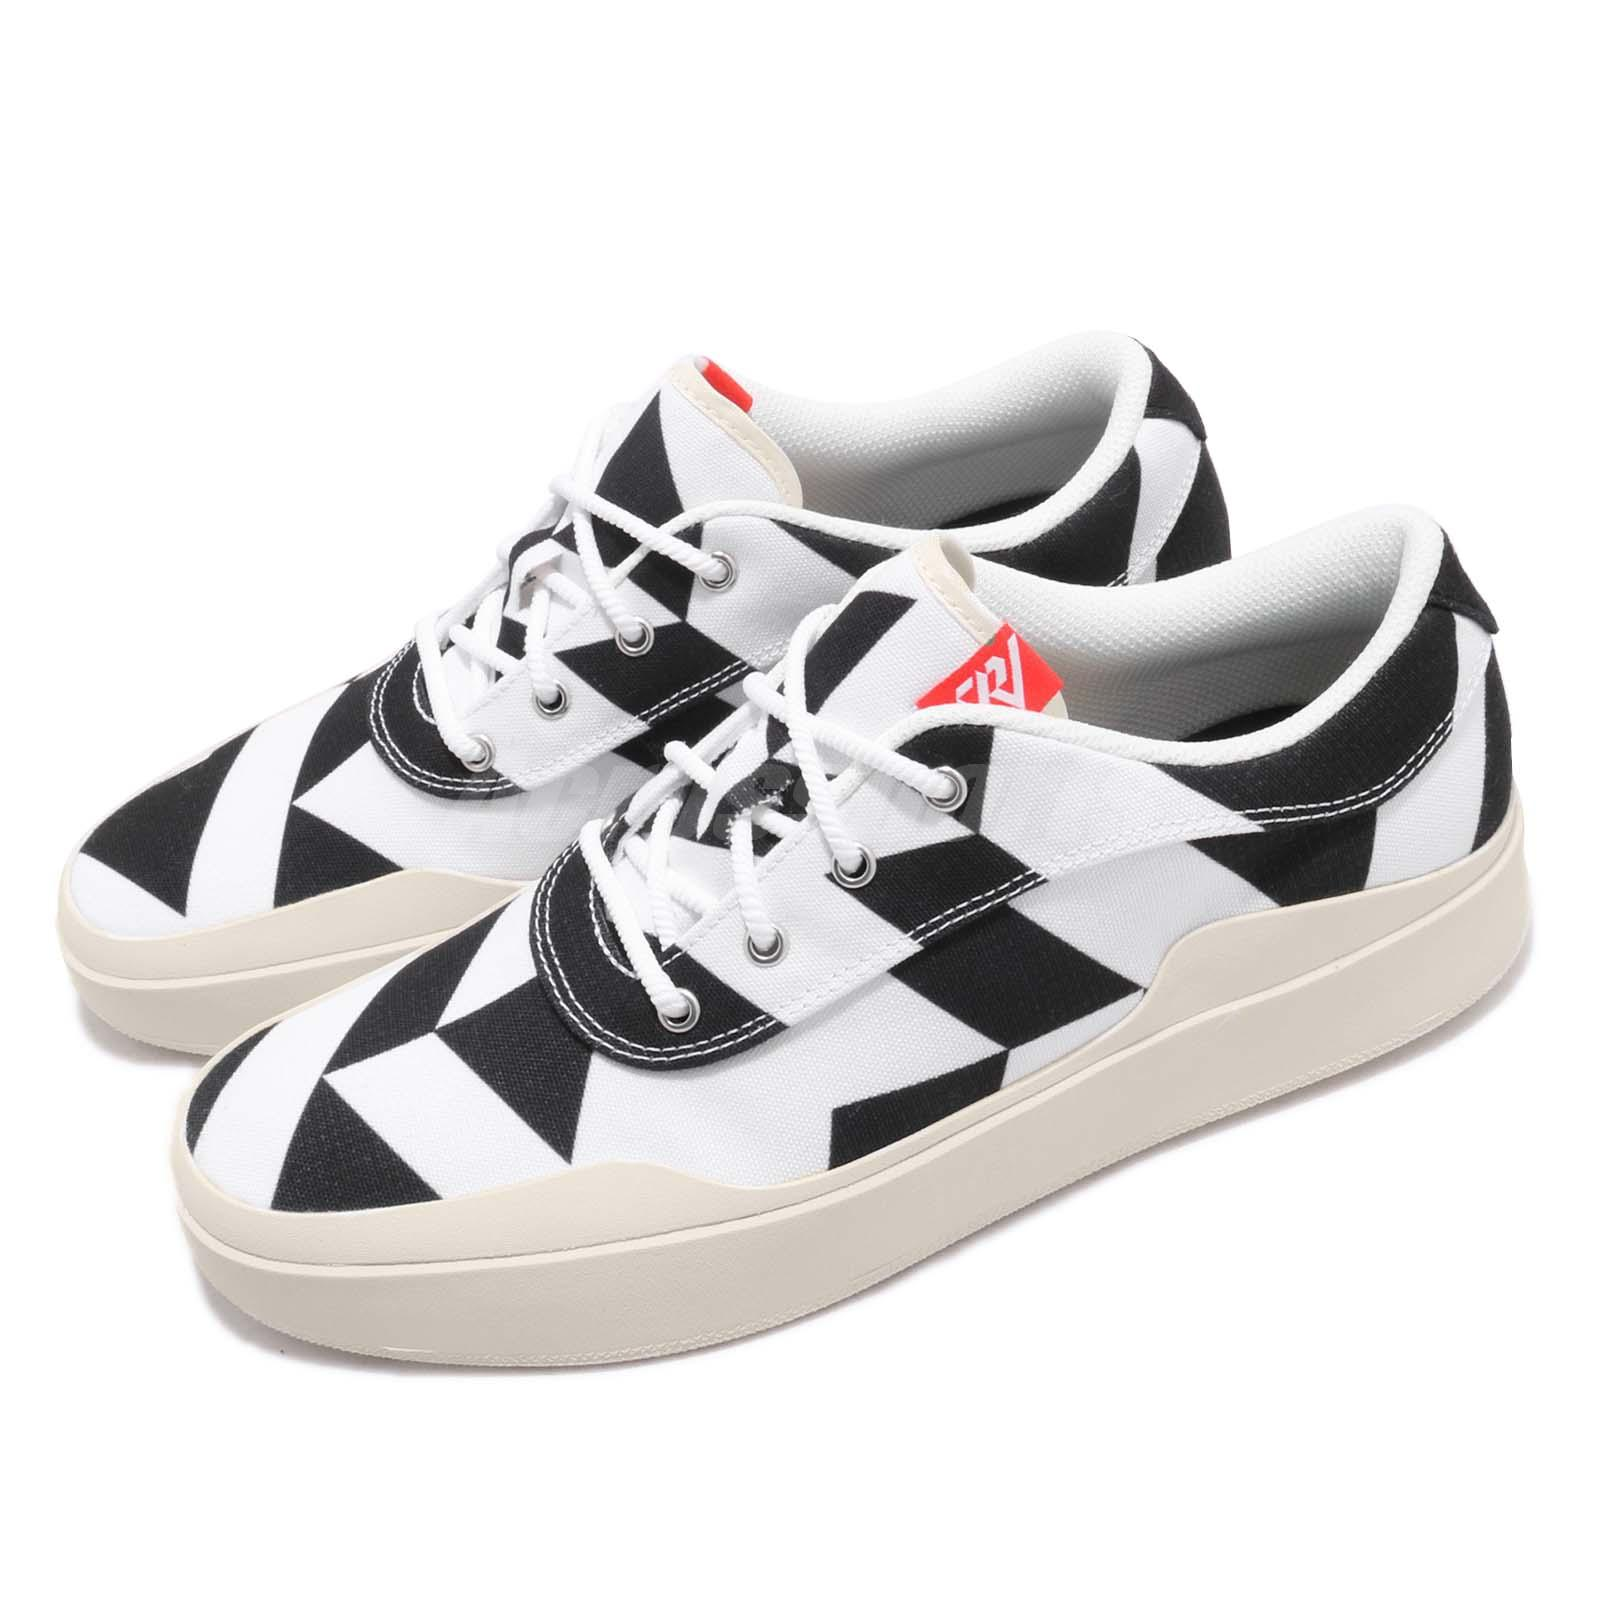 5a6b0adecc99 Details about Nike Jordan Westbrook 0.3 White Bright Crimson Black Men  Casual Shoes AA1348-100